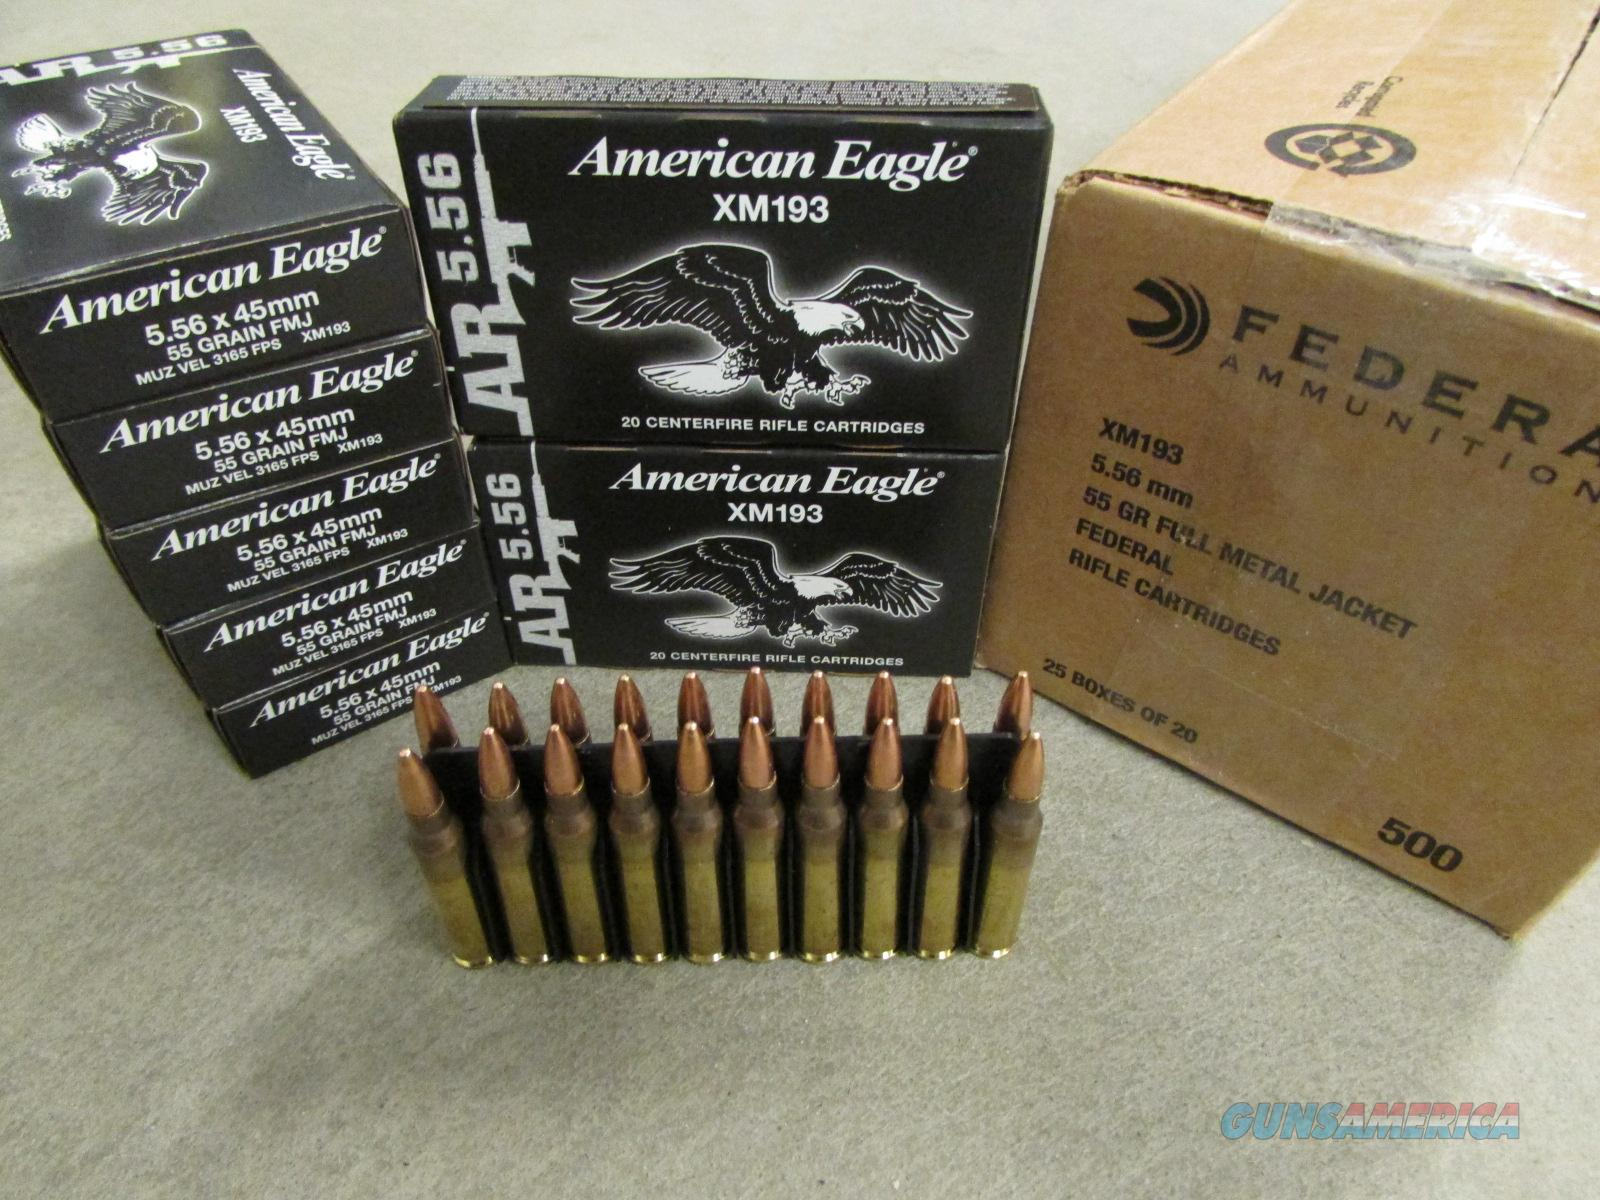 500 Rounds of Federal AE 55gr FMJ BT 5.56 NATO XM193  Non-Guns > Ammunition